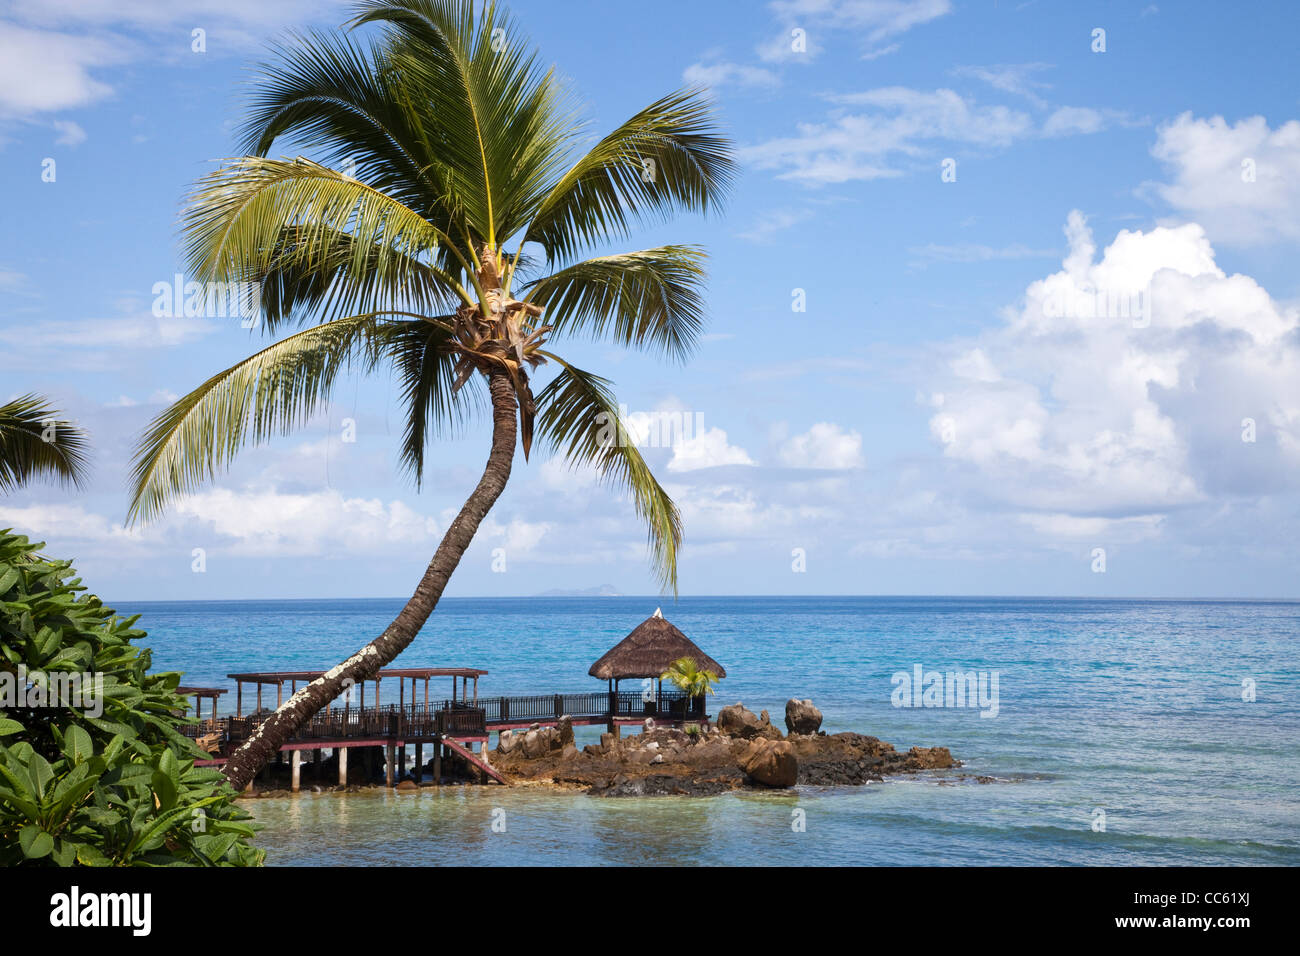 Fishermans Cove, Bel Ombre, Vallon bay, Mahe Island, Seychelles - Stock Image